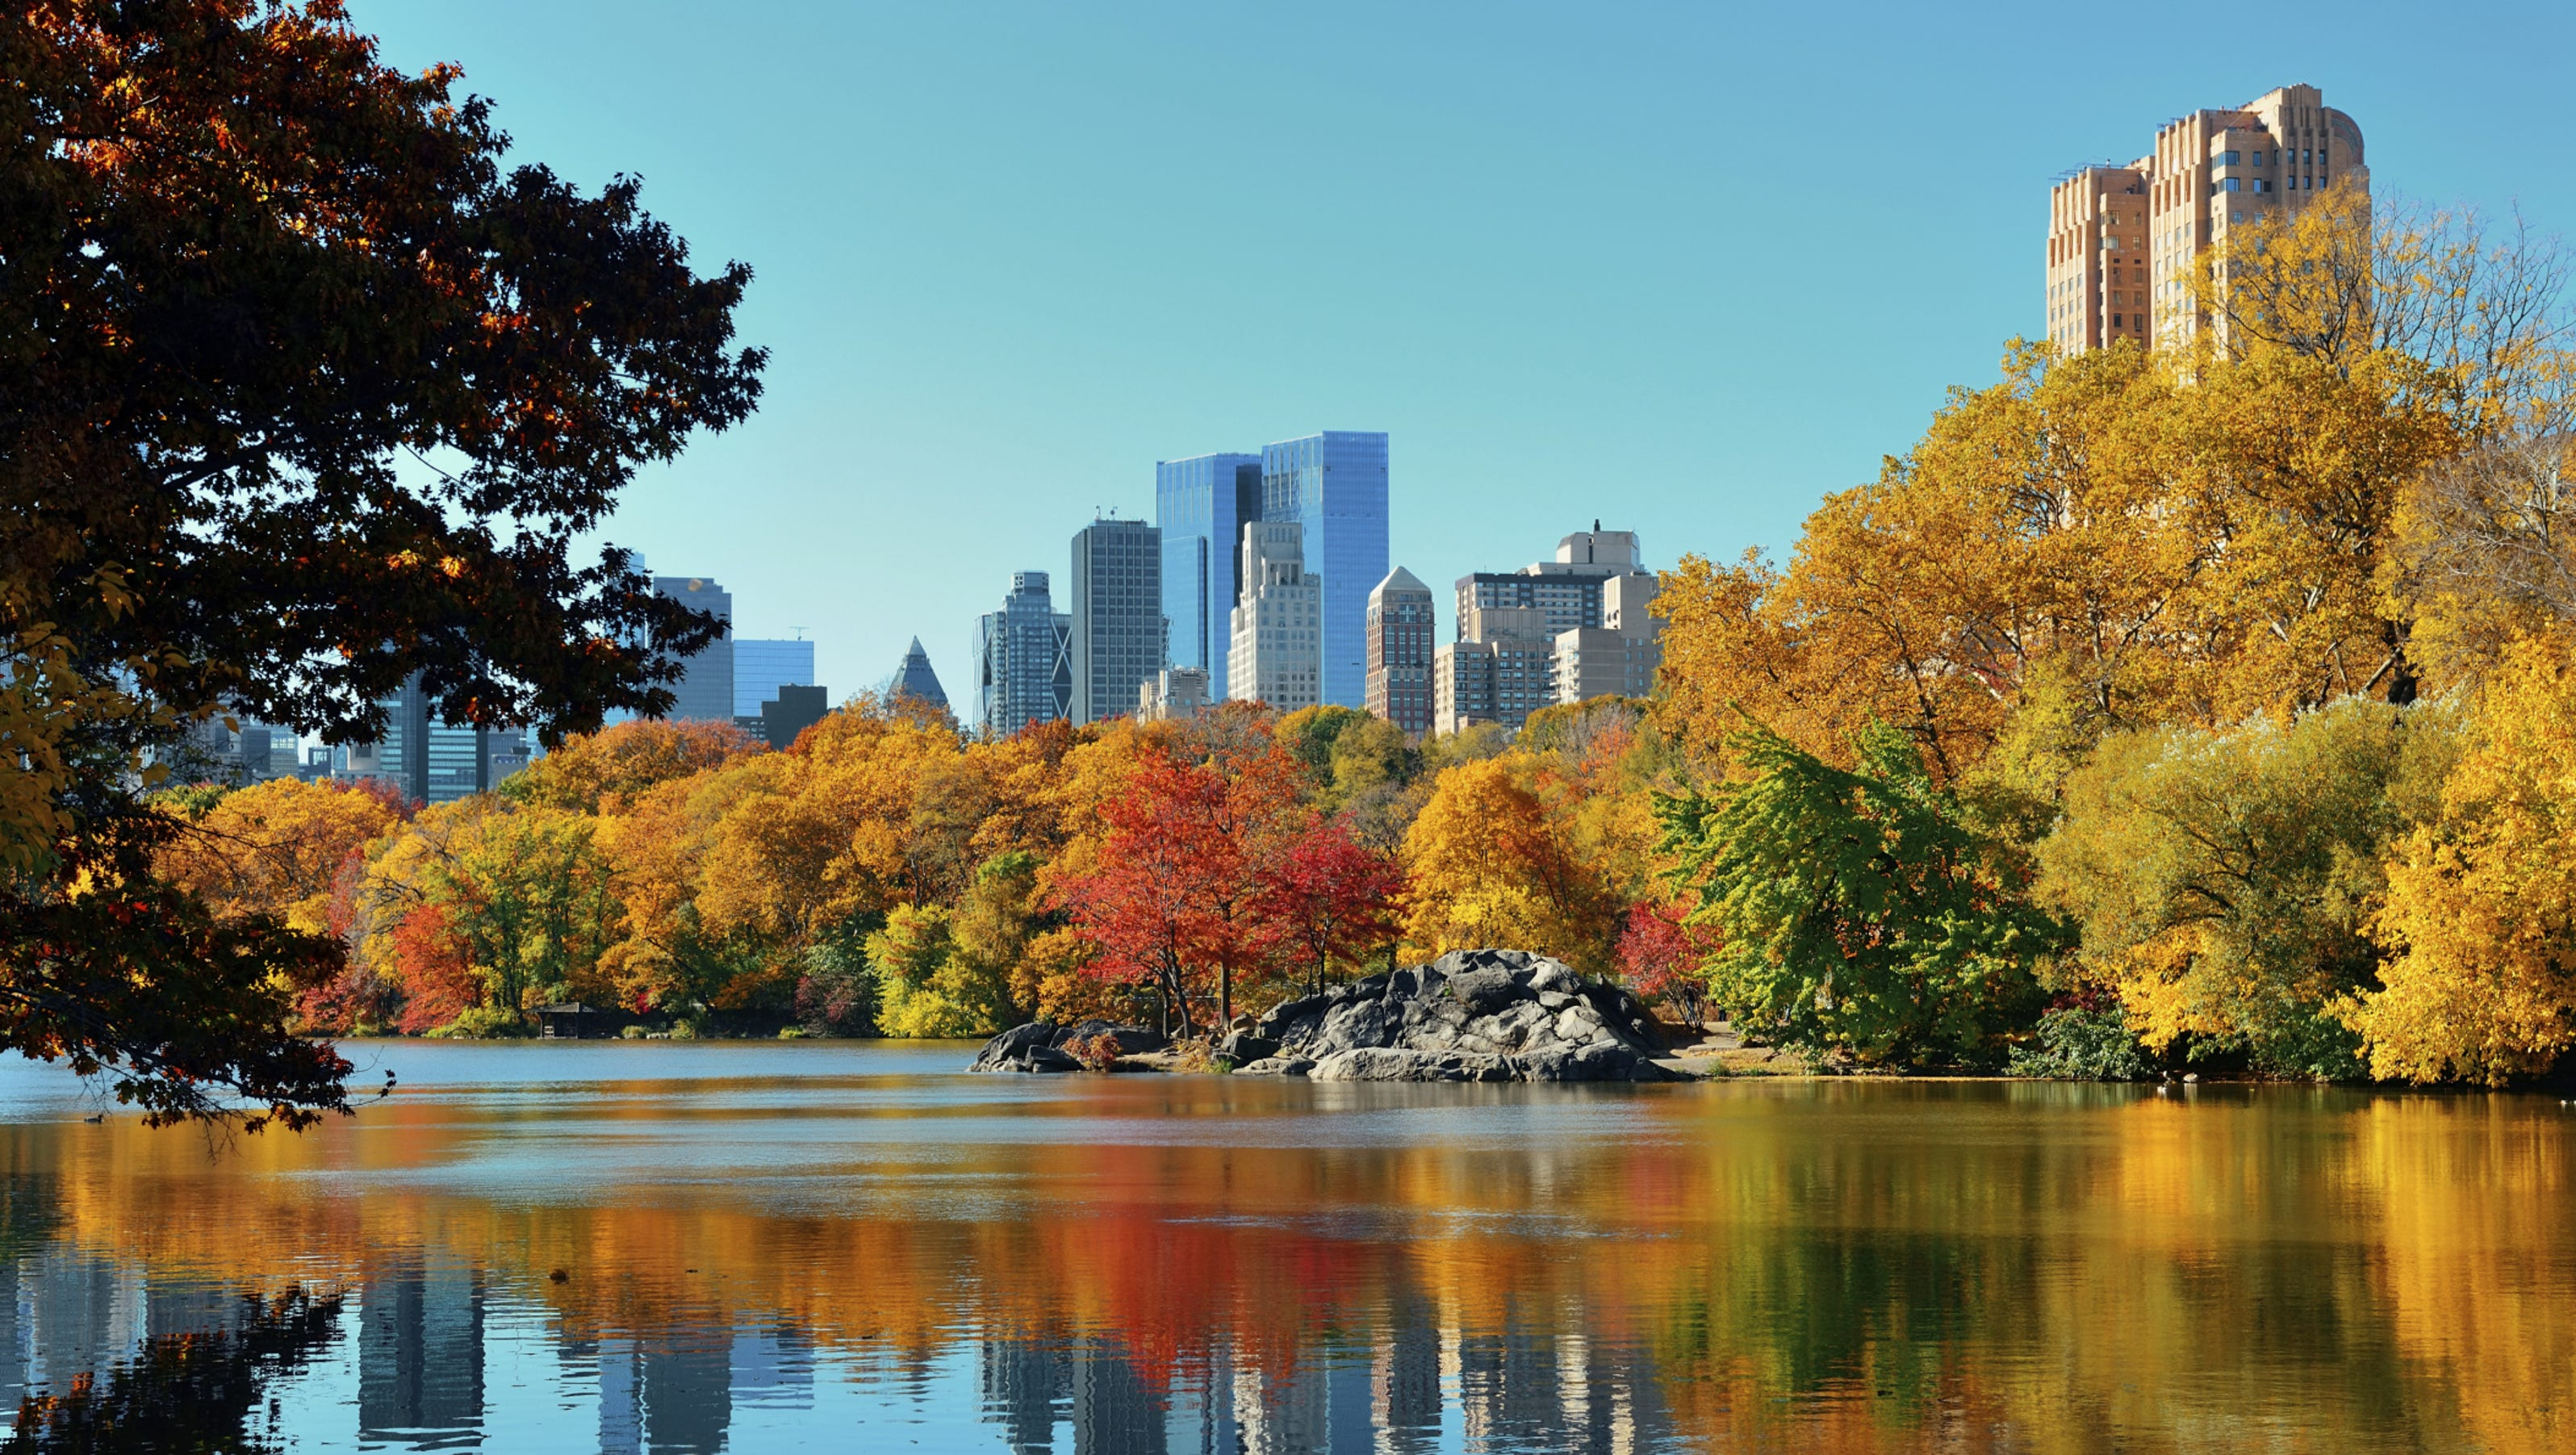 Top u s destinations for fall 2014 for Best fall destinations in the us